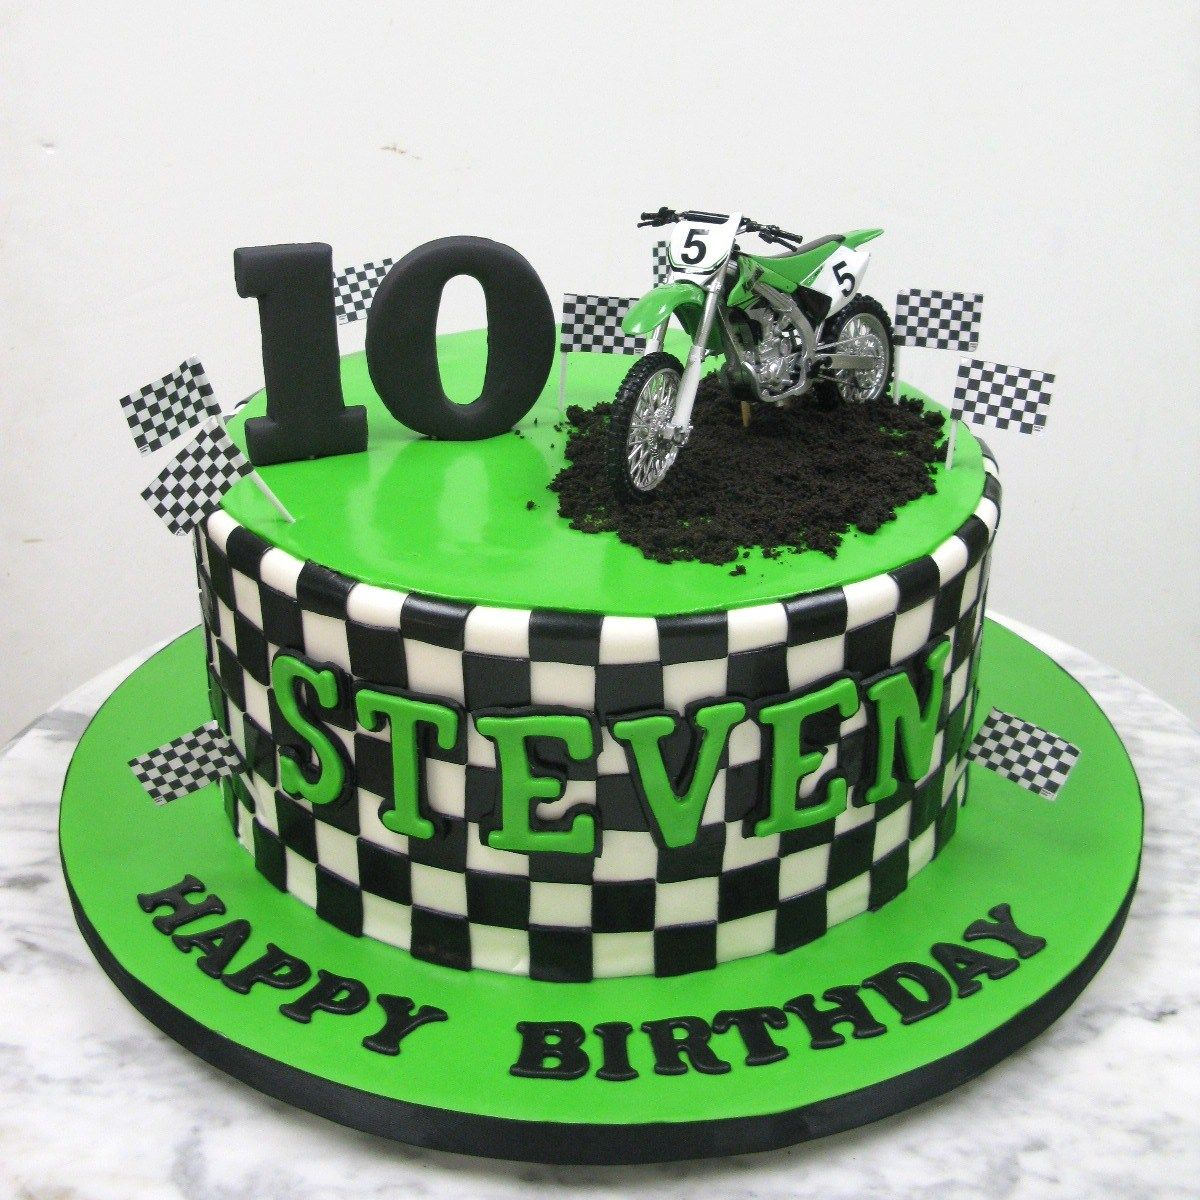 Incredible 30 Amazing Photo Of Dirt Bike Birthday Cake With Images Dirt Birthday Cards Printable Trancafe Filternl